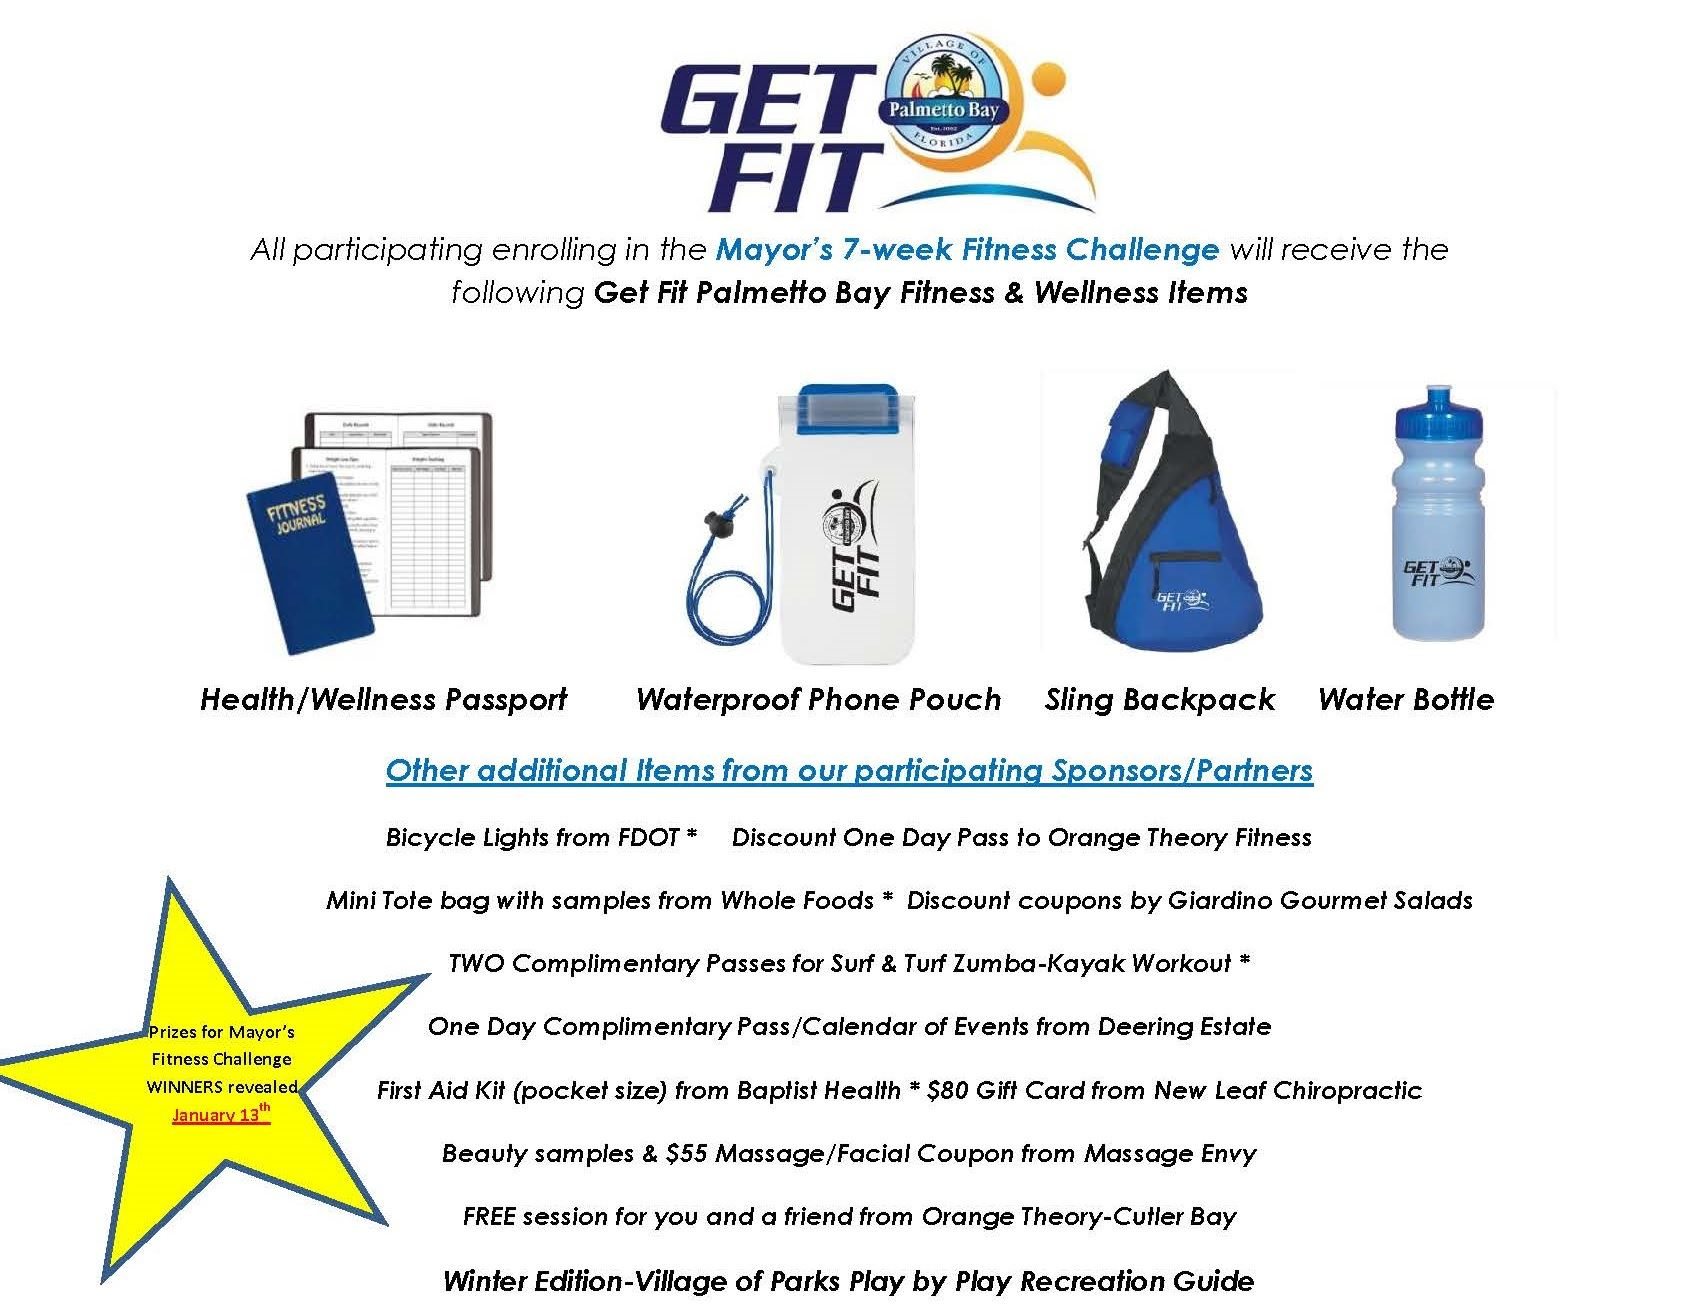 Get Fit Palmetto Bay-Goodie Bag Items 2017